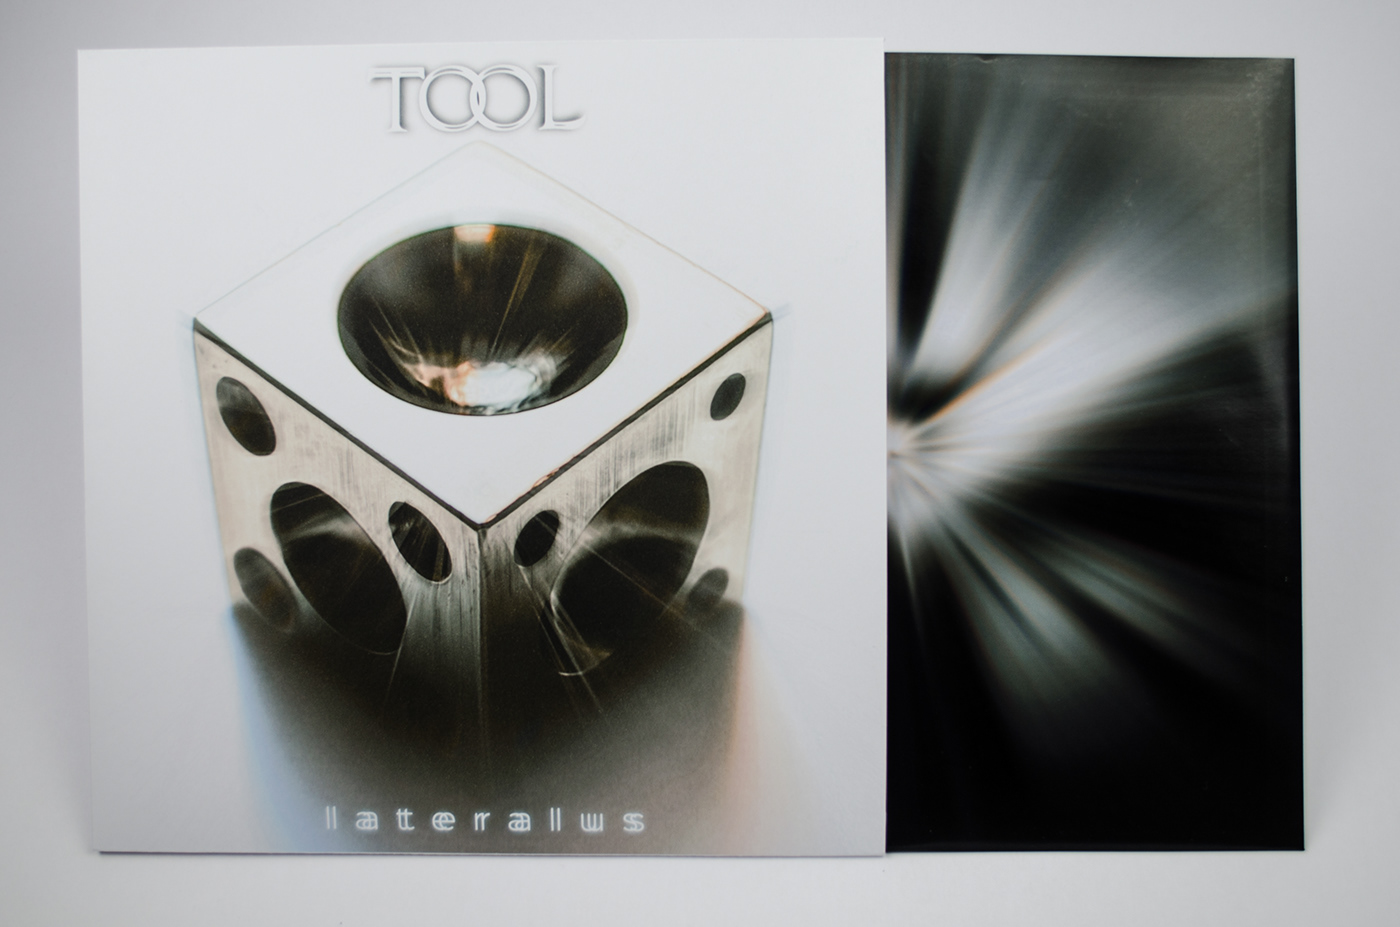 Tool Album Covers